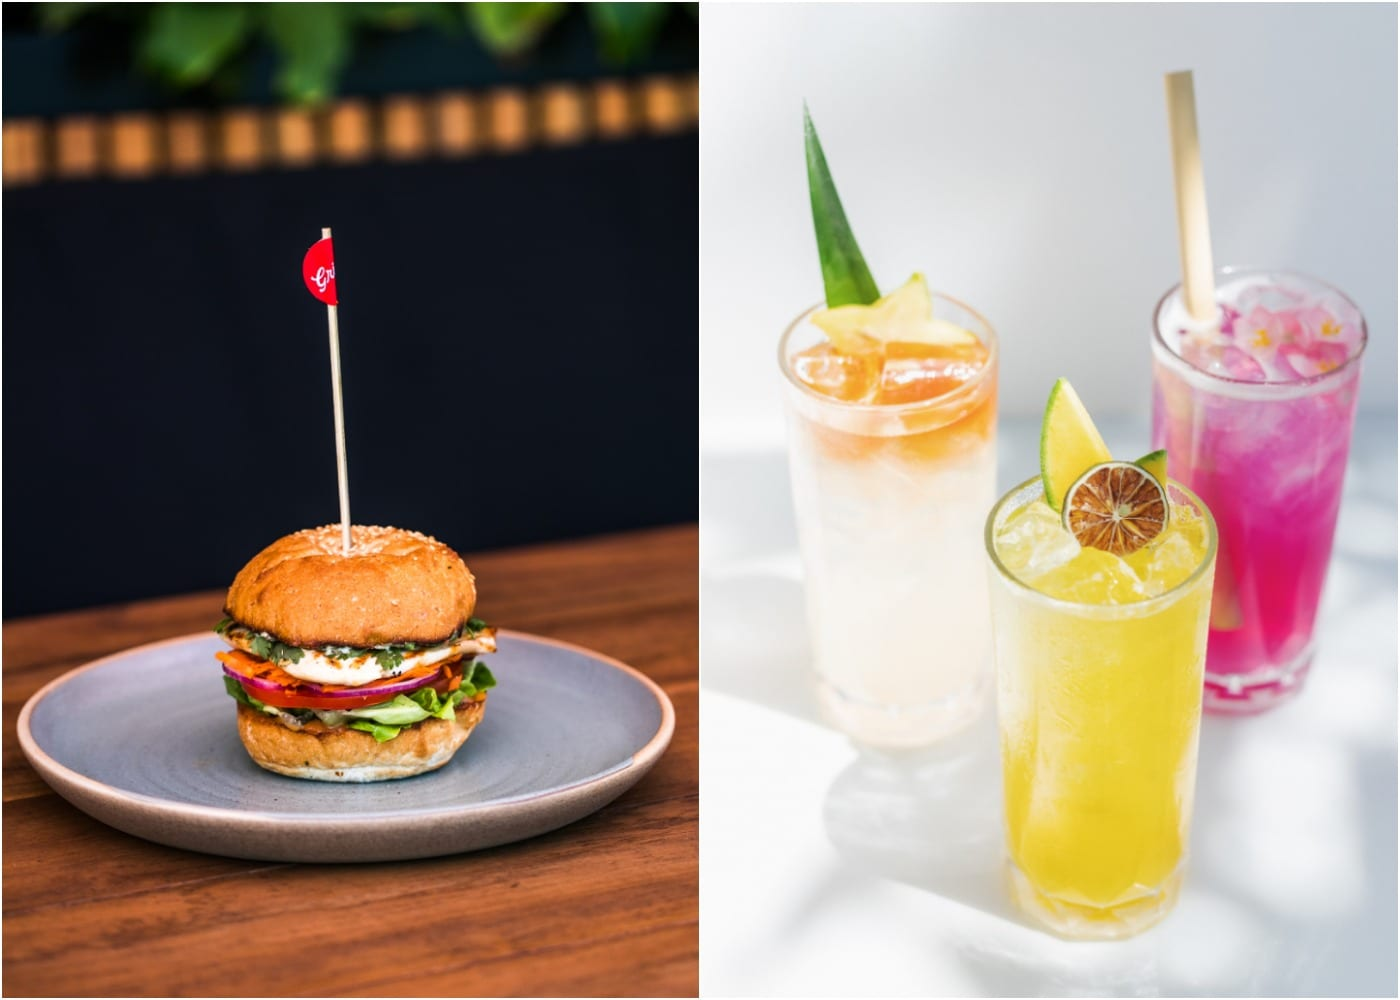 Burger and cocktails from Grill'd in Seminyak, Bali, Indonesia